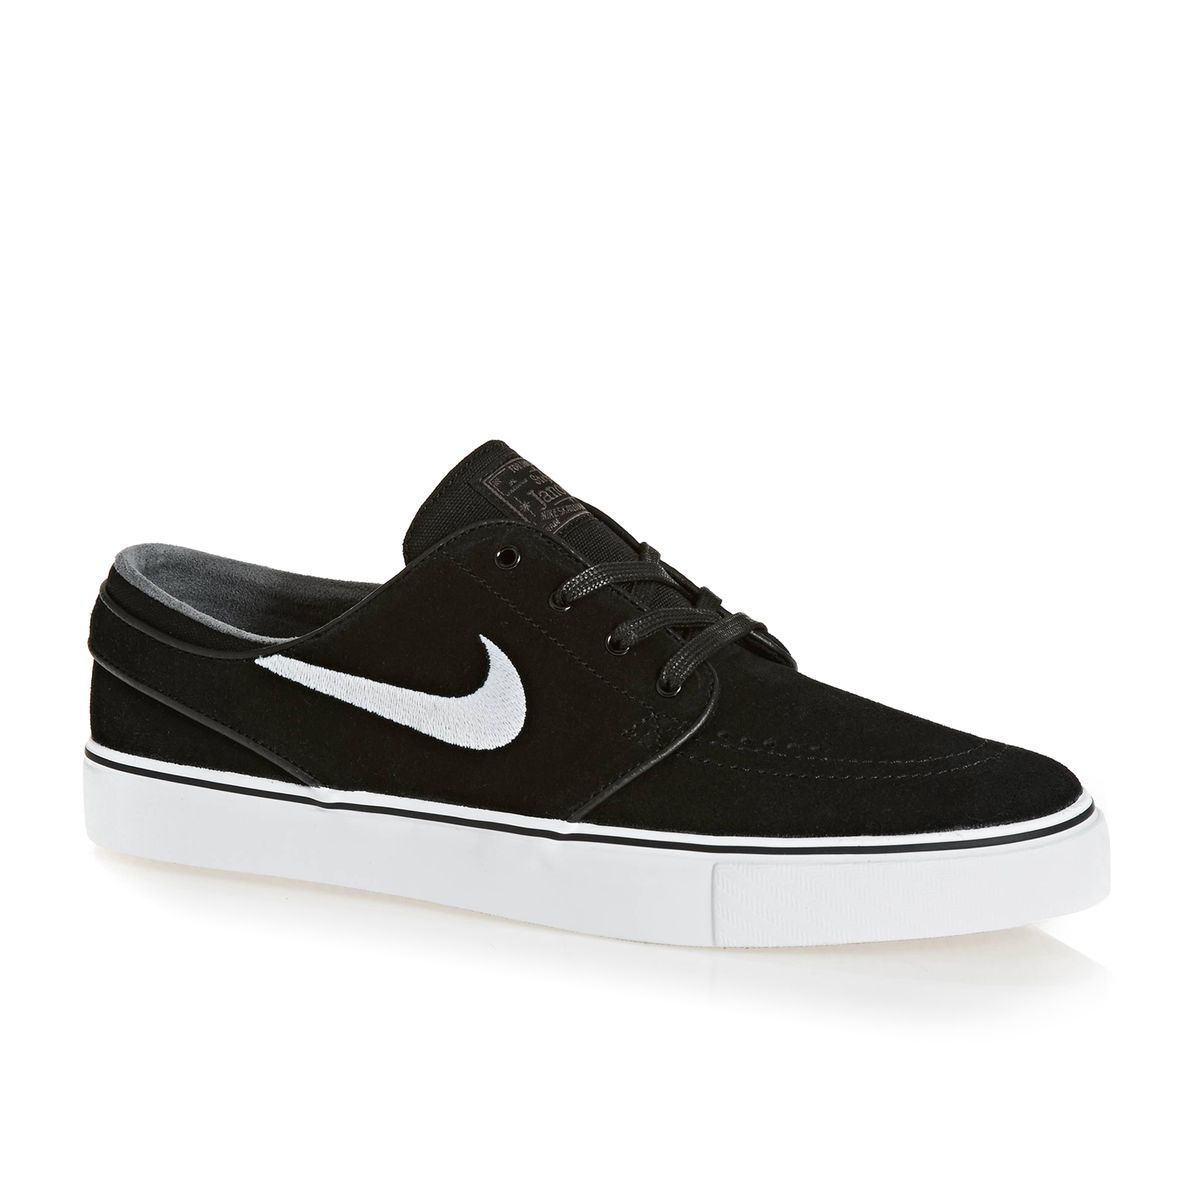 Nike Sb Zoom Stefan Janoski Shoes Free Delivery Options On All Orders From Surfdome Uk Kirsty Wishlist In 2019 Janoski Shoes Stefan Janoski Shoes Black